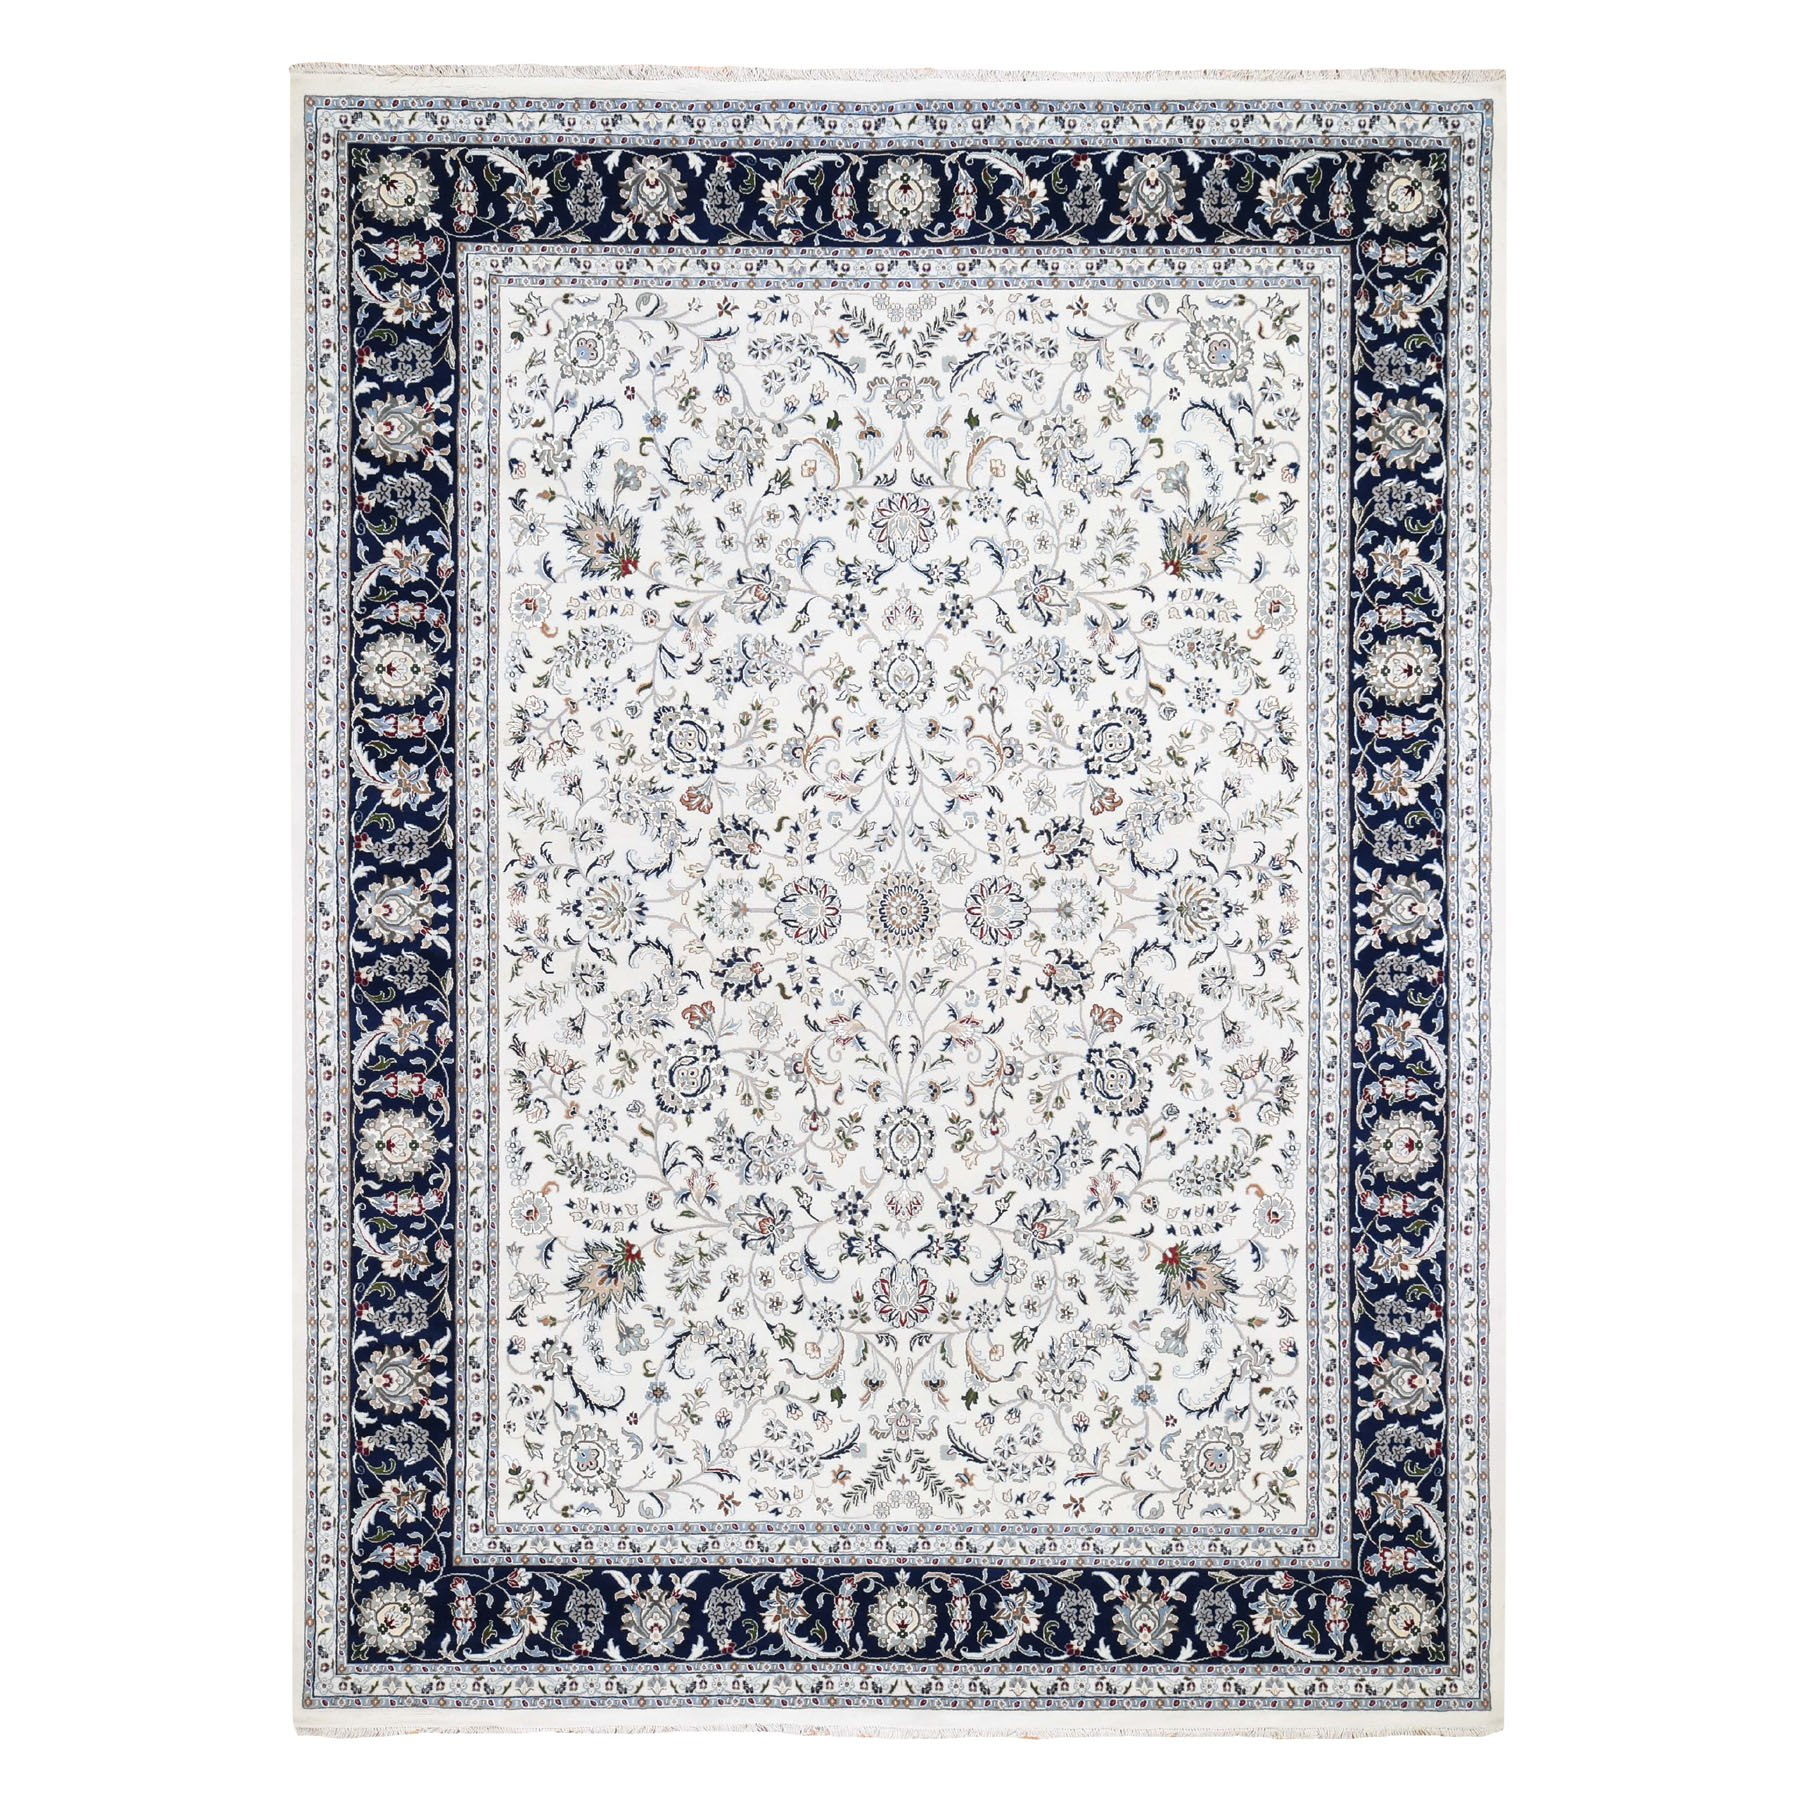 Pirniakan Collection Hand Knotted Ivory Rug No: 0195660